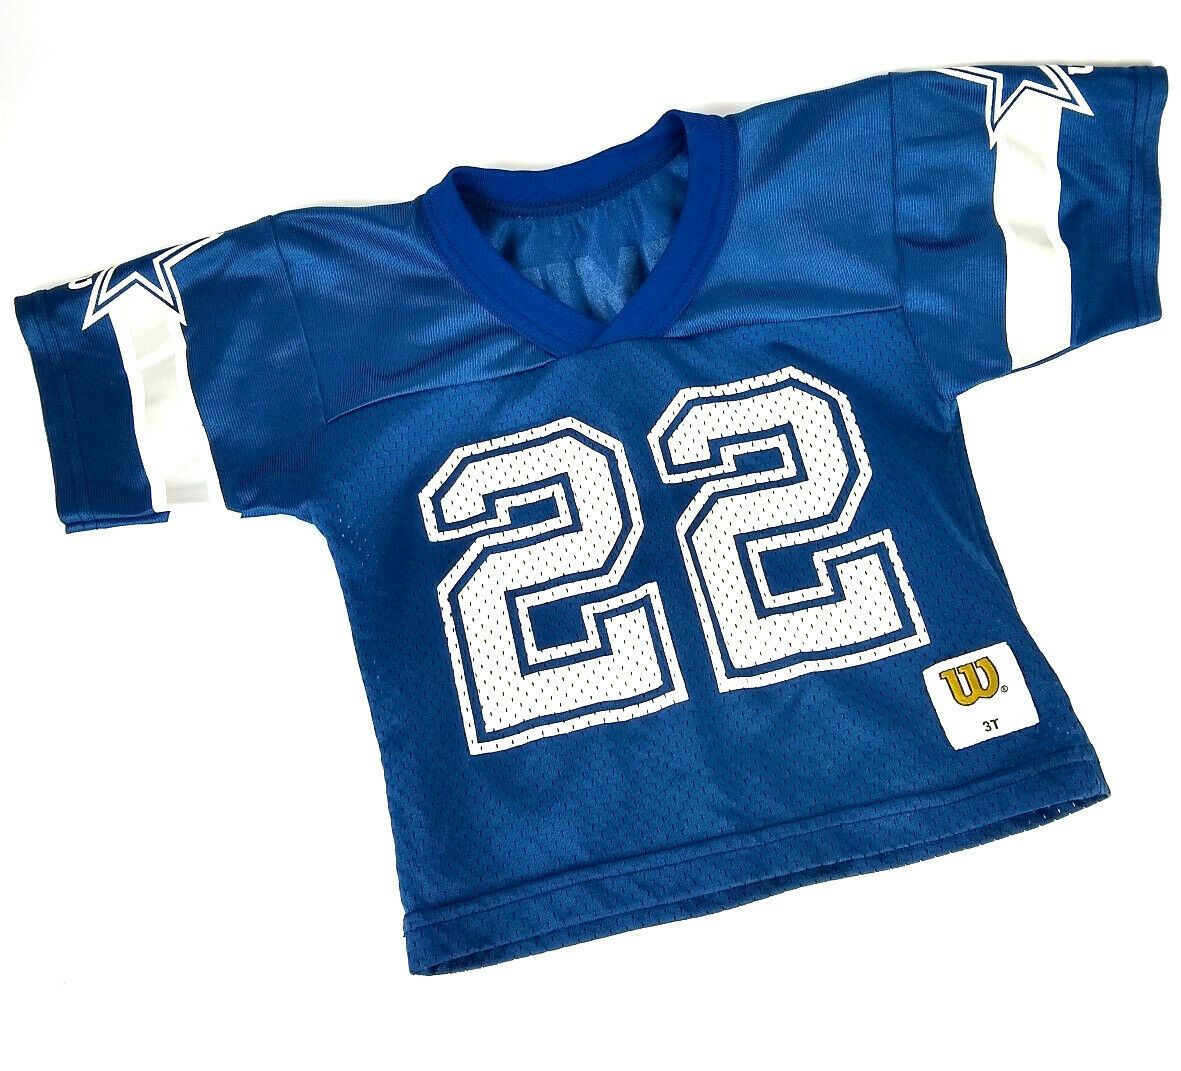 cheap for discount 0867a ba888 Details about Vintage Wilson NFL Cowboys #22 Emmitt Smith Football Jersey  Toddler Size 3T